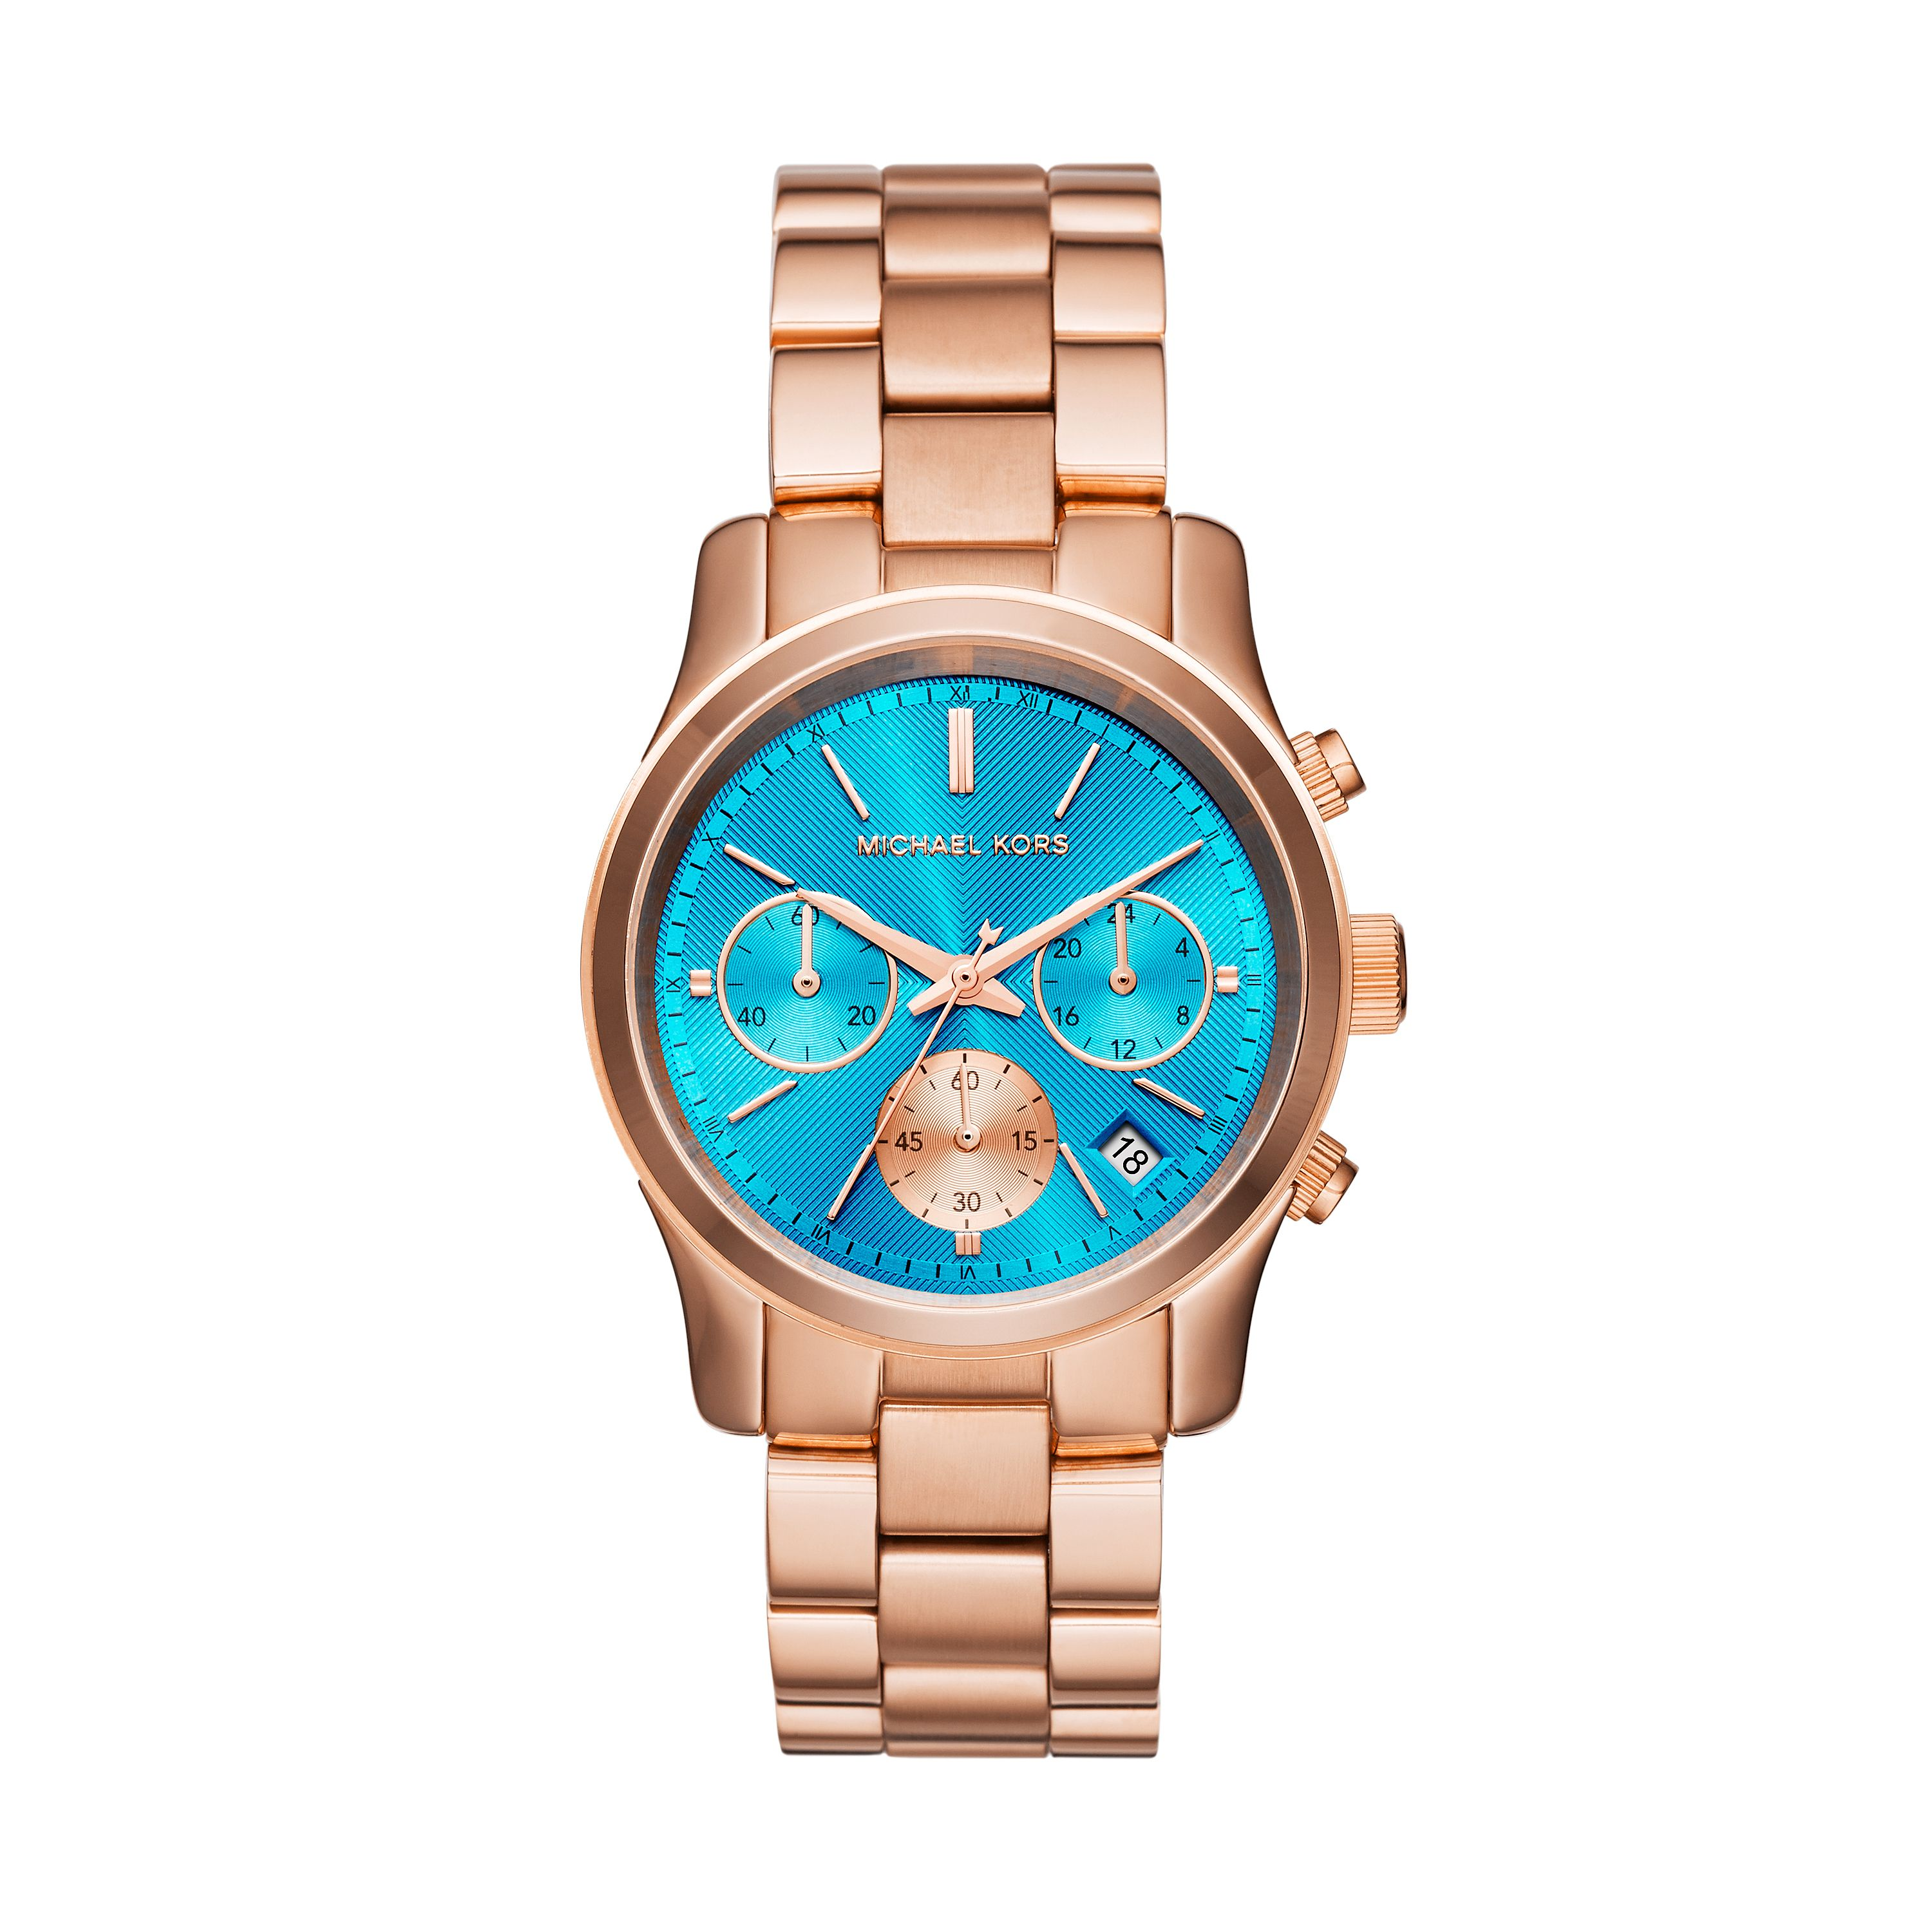 d692d0cfa69d Michael Kors Rose Tone Ladies Watch featuring a turquoise dial. MK6164